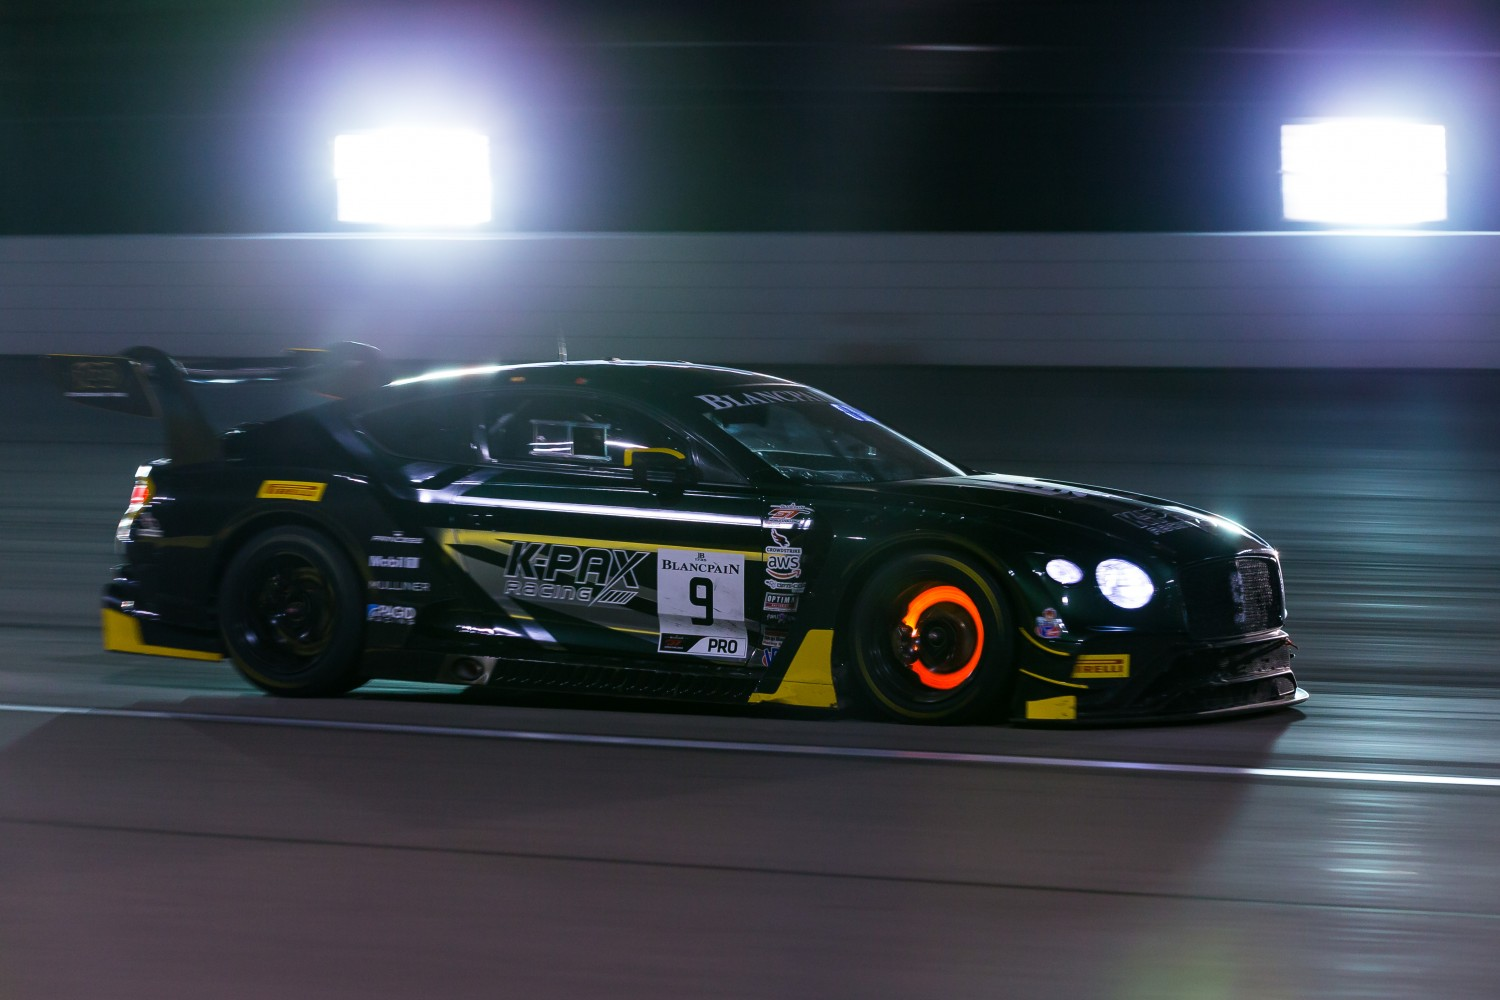 #9 Bentley Continental GT3 of Alvaro Parente and Andy Soucek with K-PAX Racing2019 Blancpain GT World Challenge America - Las Vegas, Las Vegas NV | Fabian Lagunas/SRO